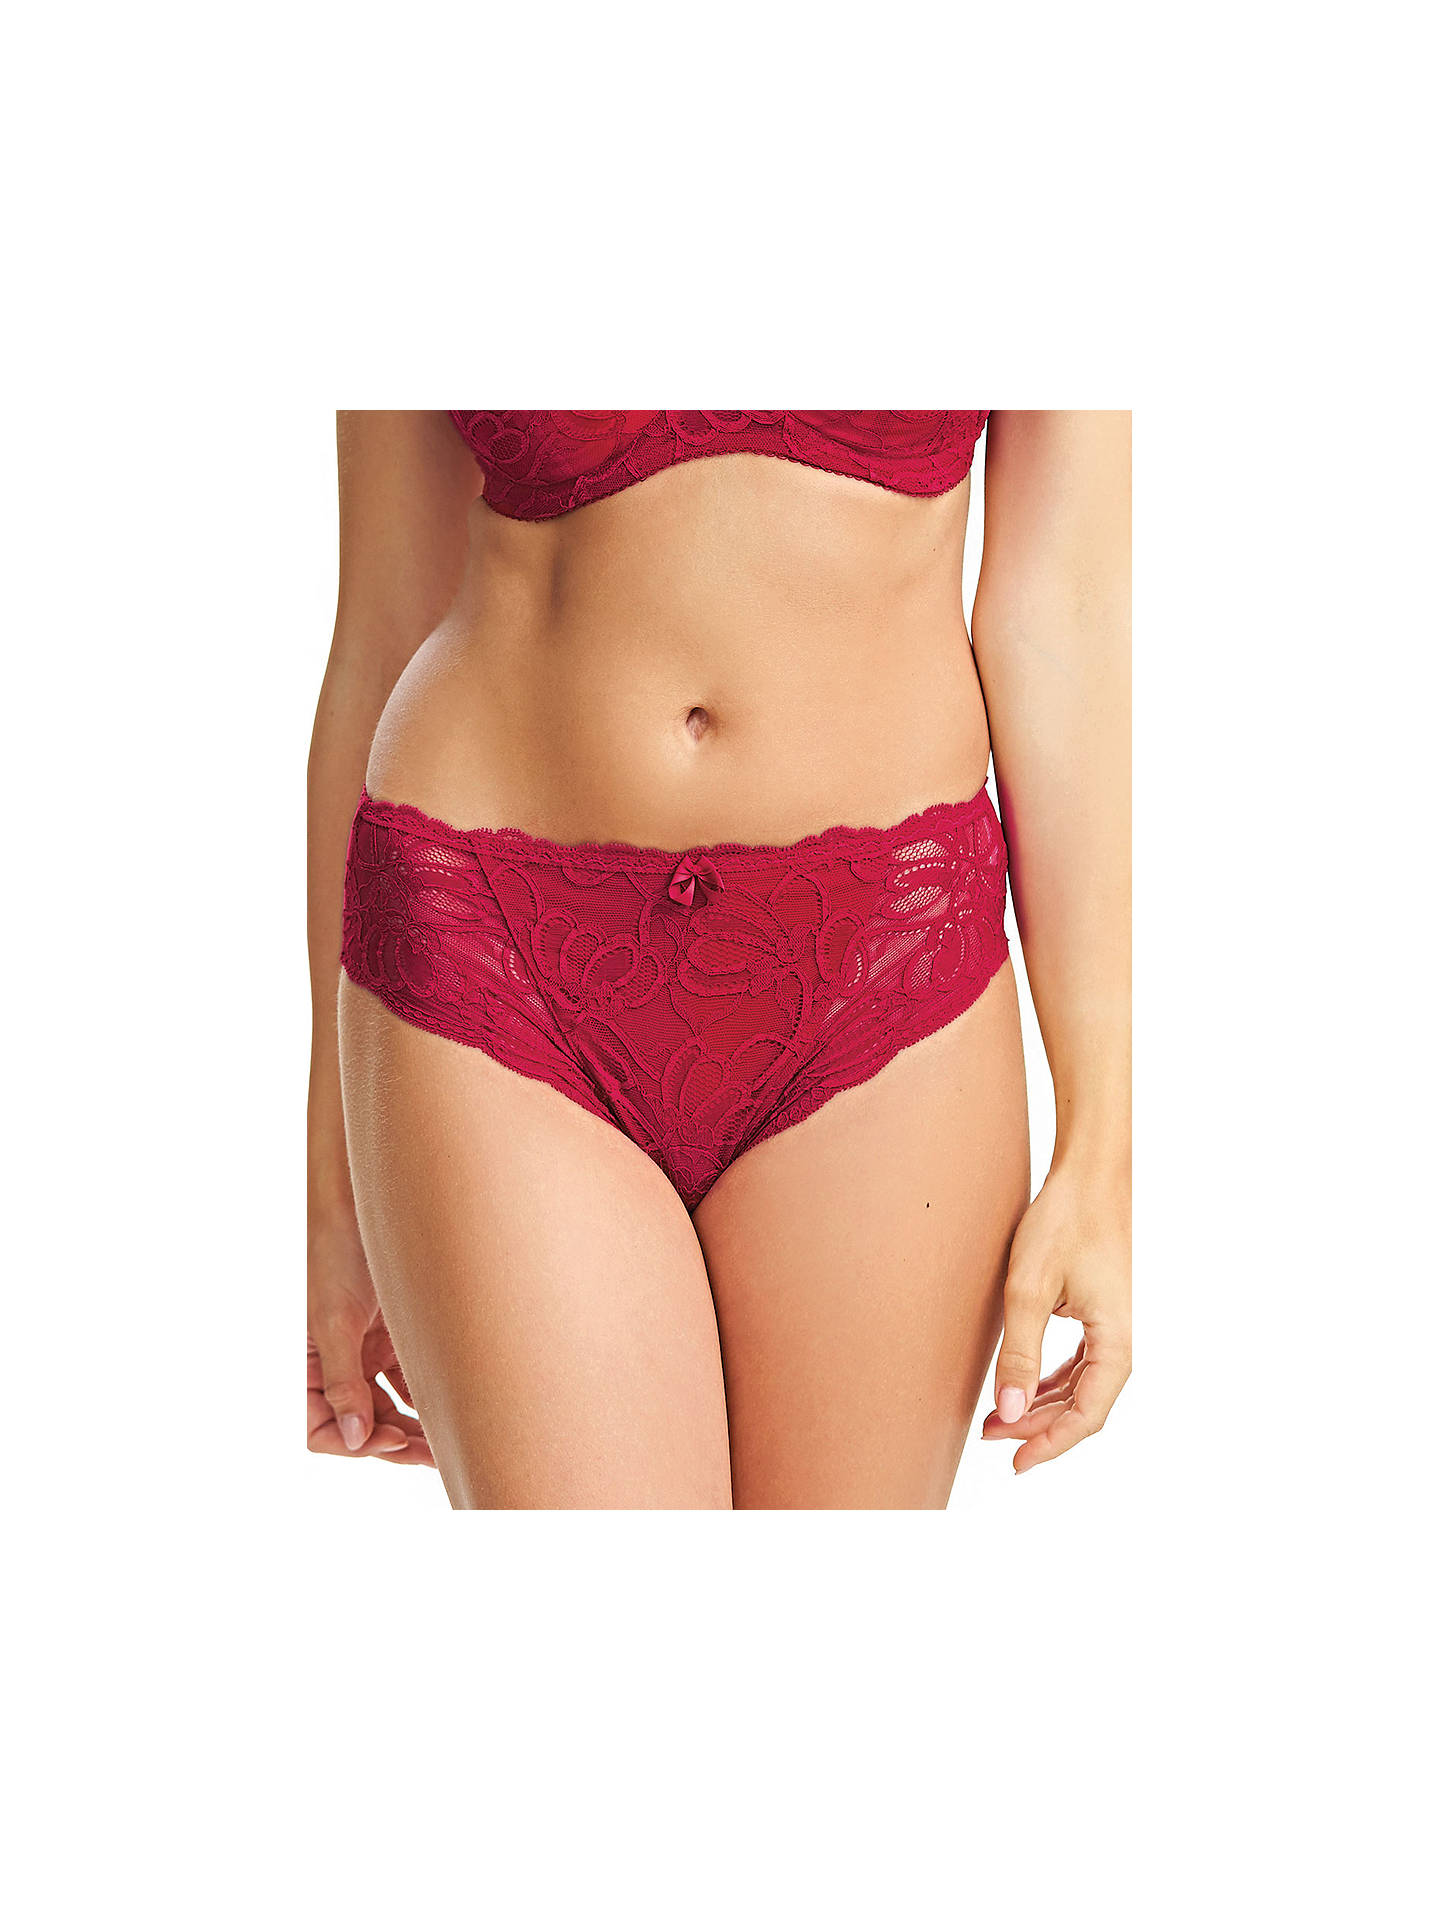 ca4c2d266eb981 Buy Fantasie Jacqueline Lace Briefs, Red, S Online at johnlewis.com ...